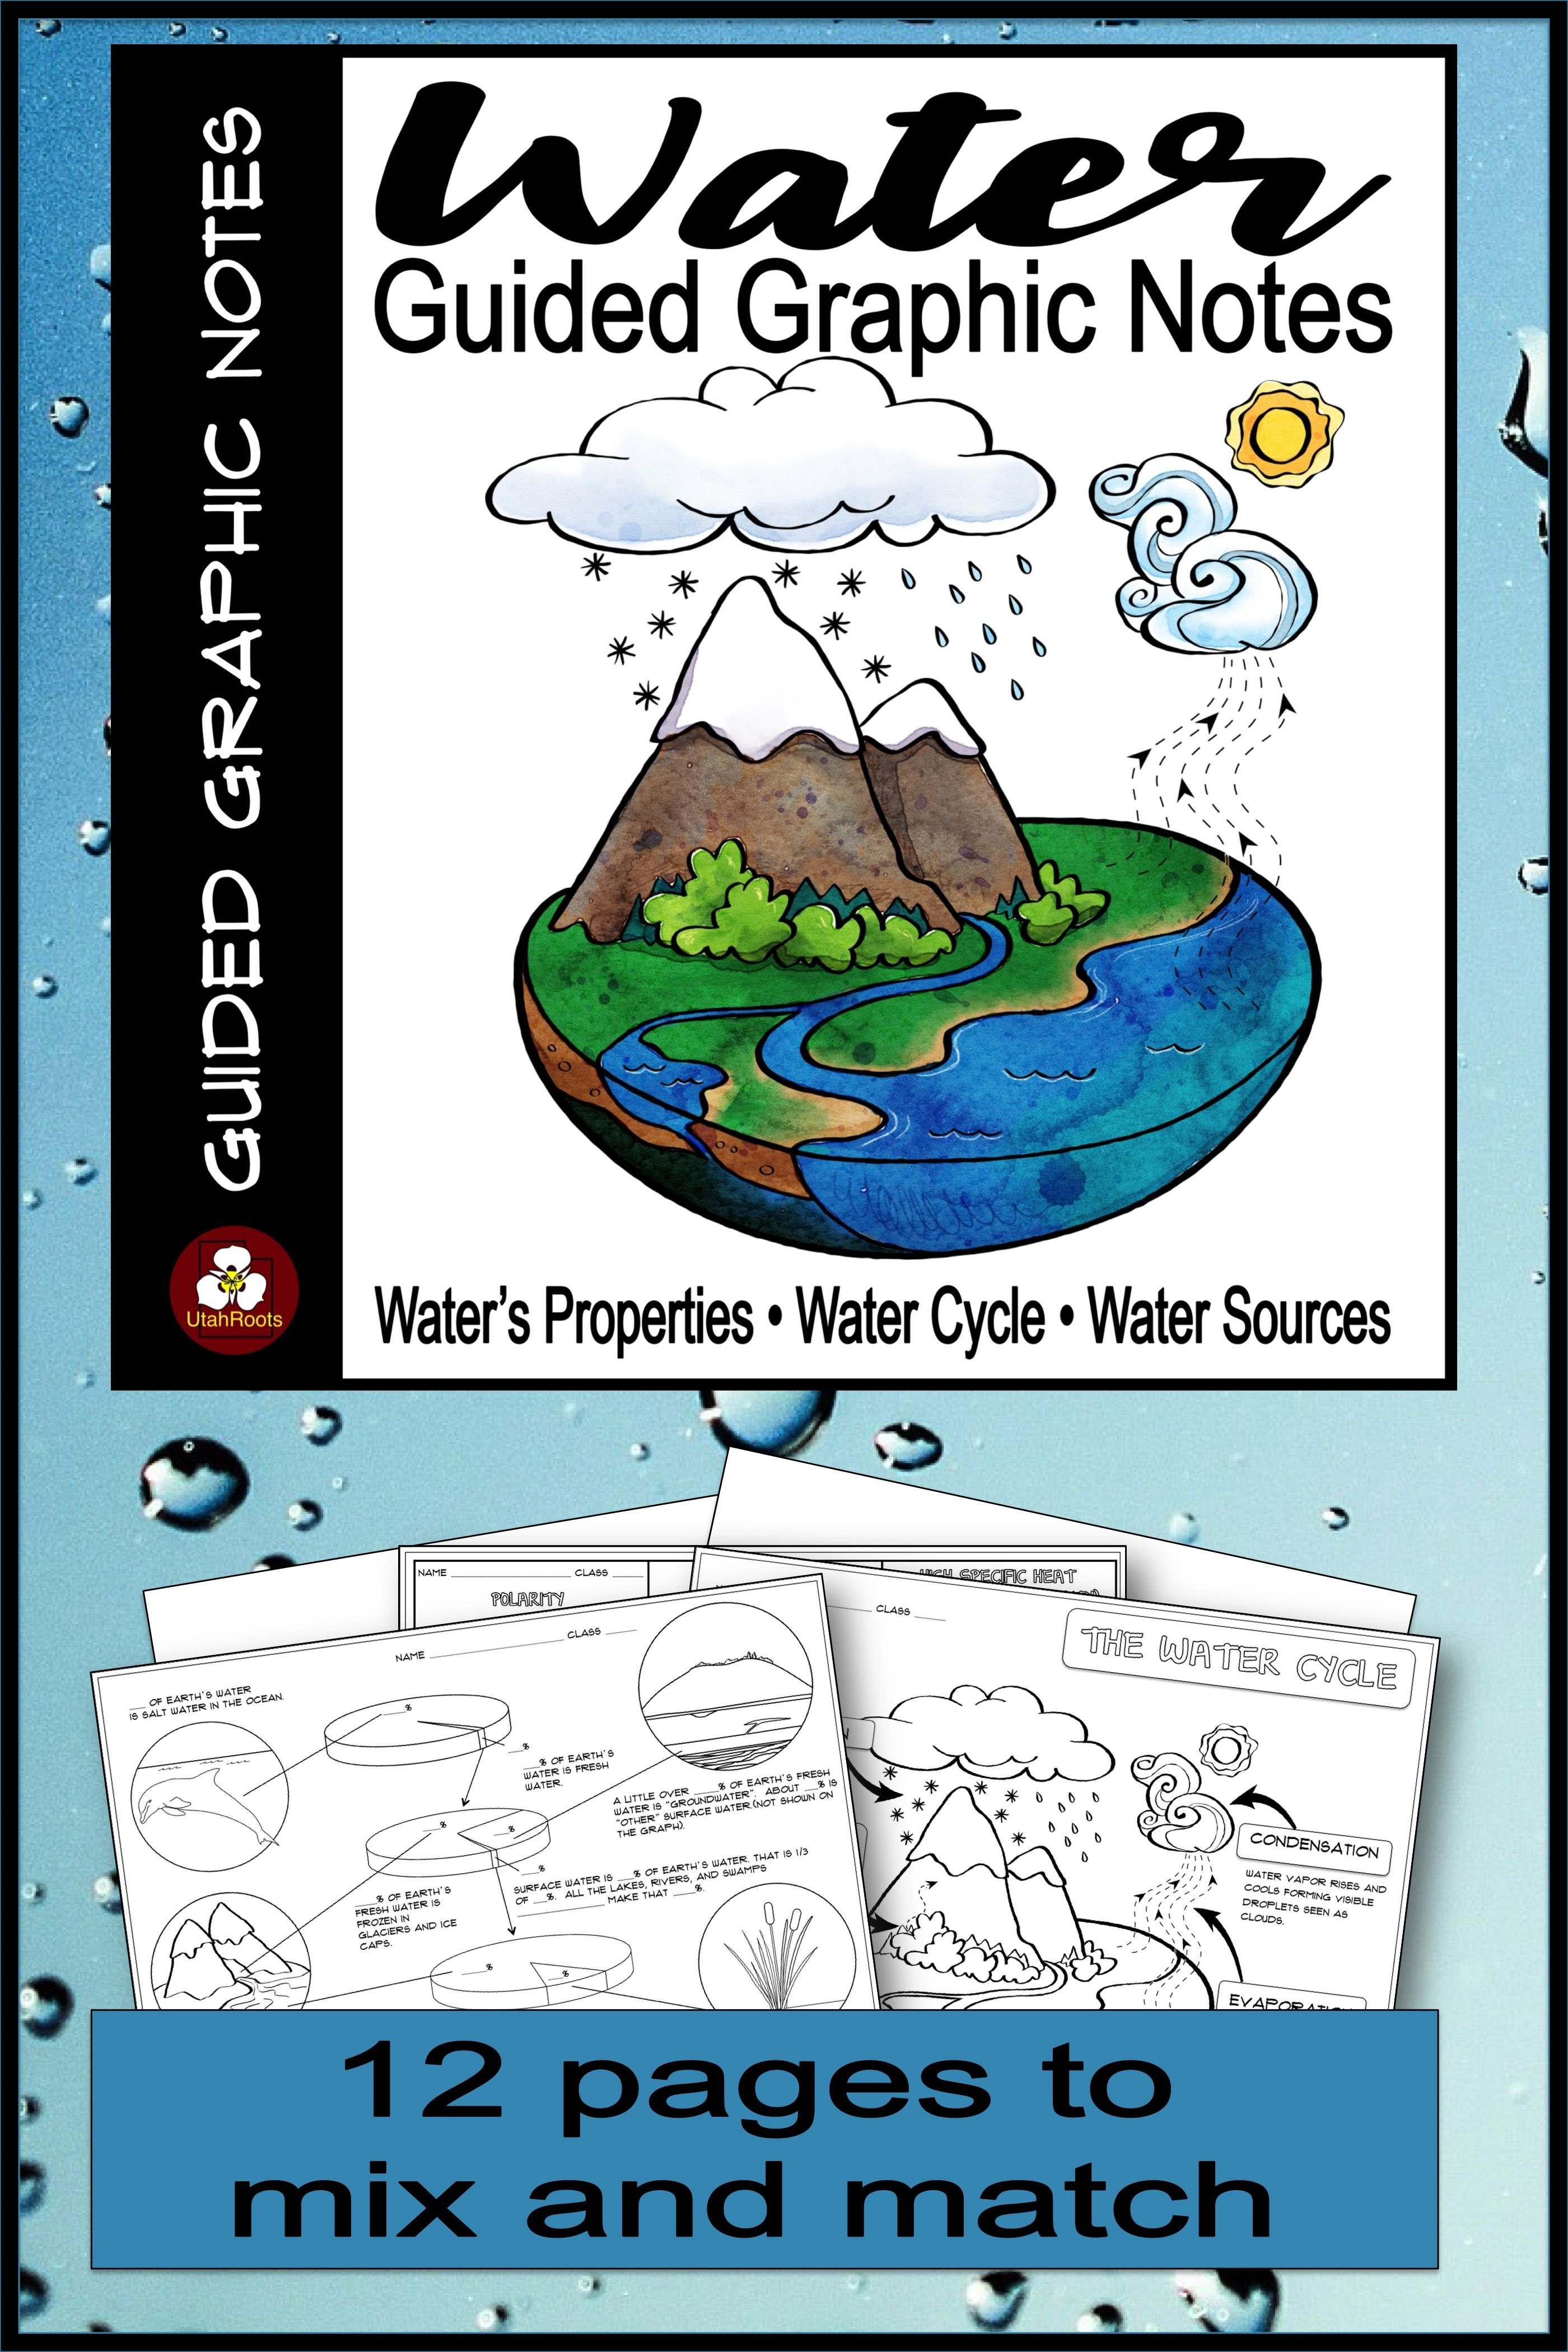 Properties Of Water Water Sources The Water Cycle Guided